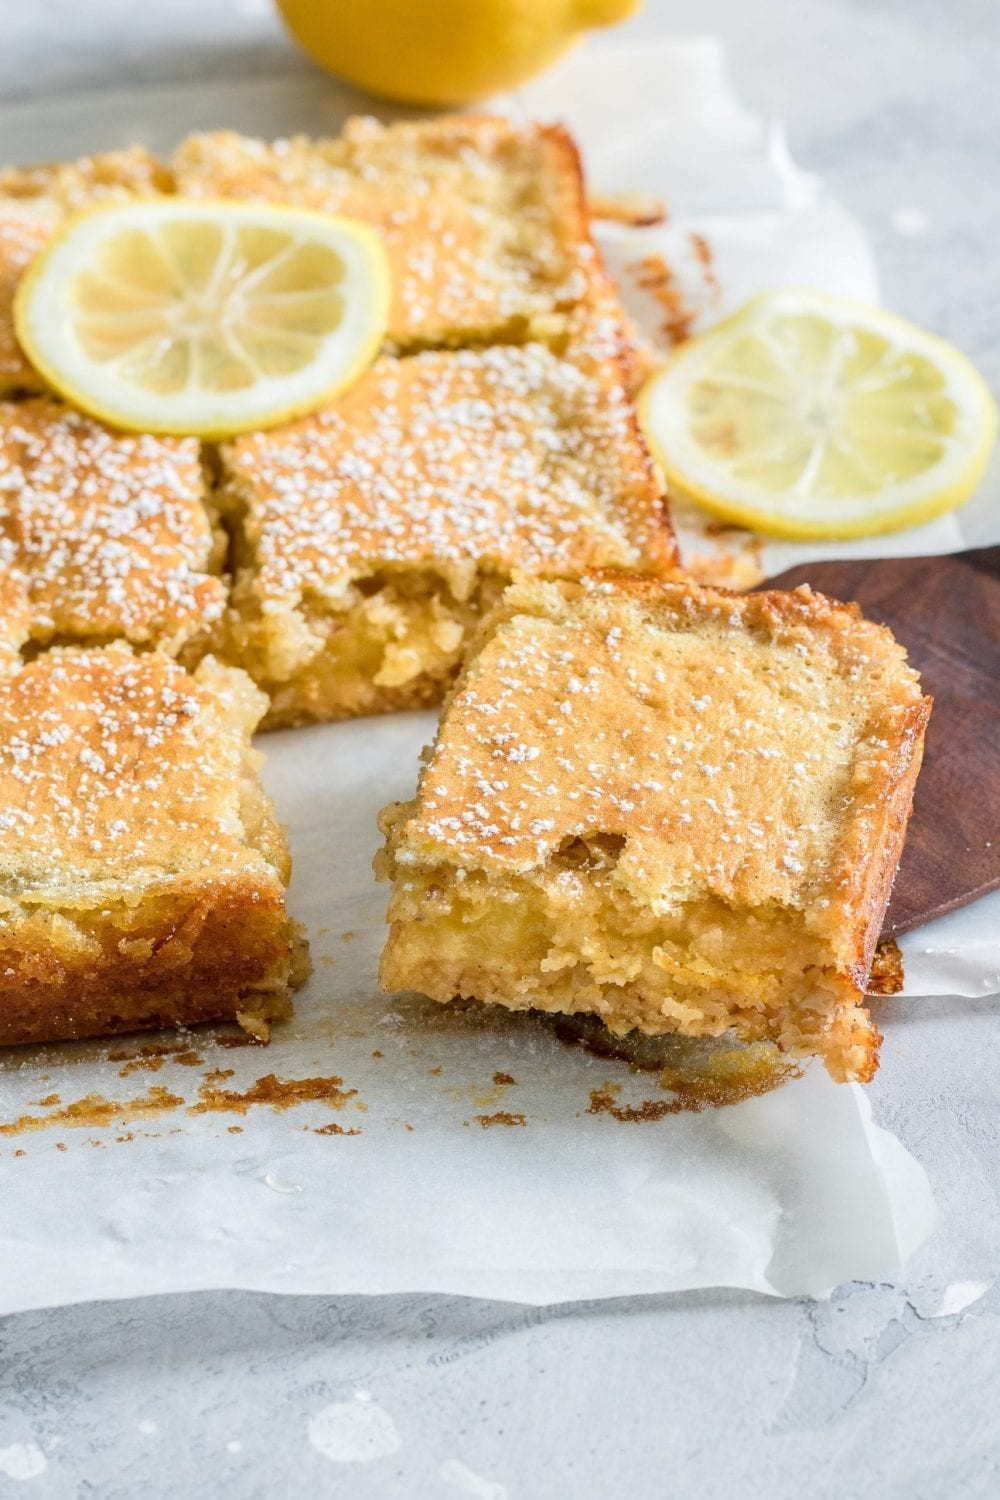 Cannabis infused emon squares with sliced lemons on top of them. The squares are spread on a baking tray